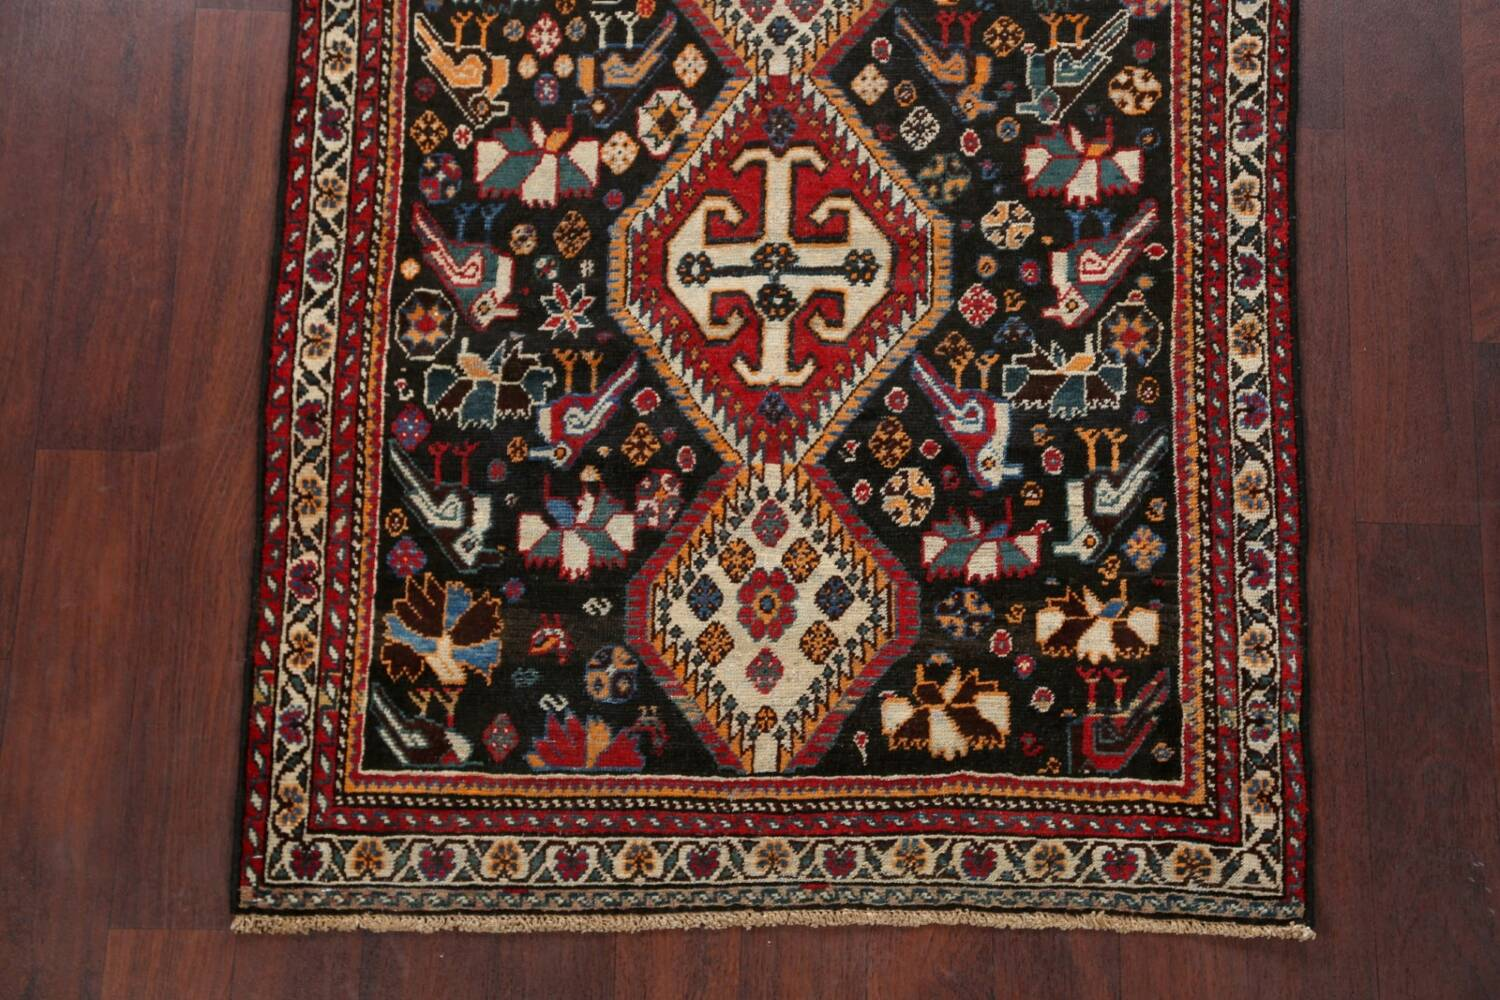 Antique Pre-1900 Tribal Bakhtiari Persian Area Rug 4x5 image 8